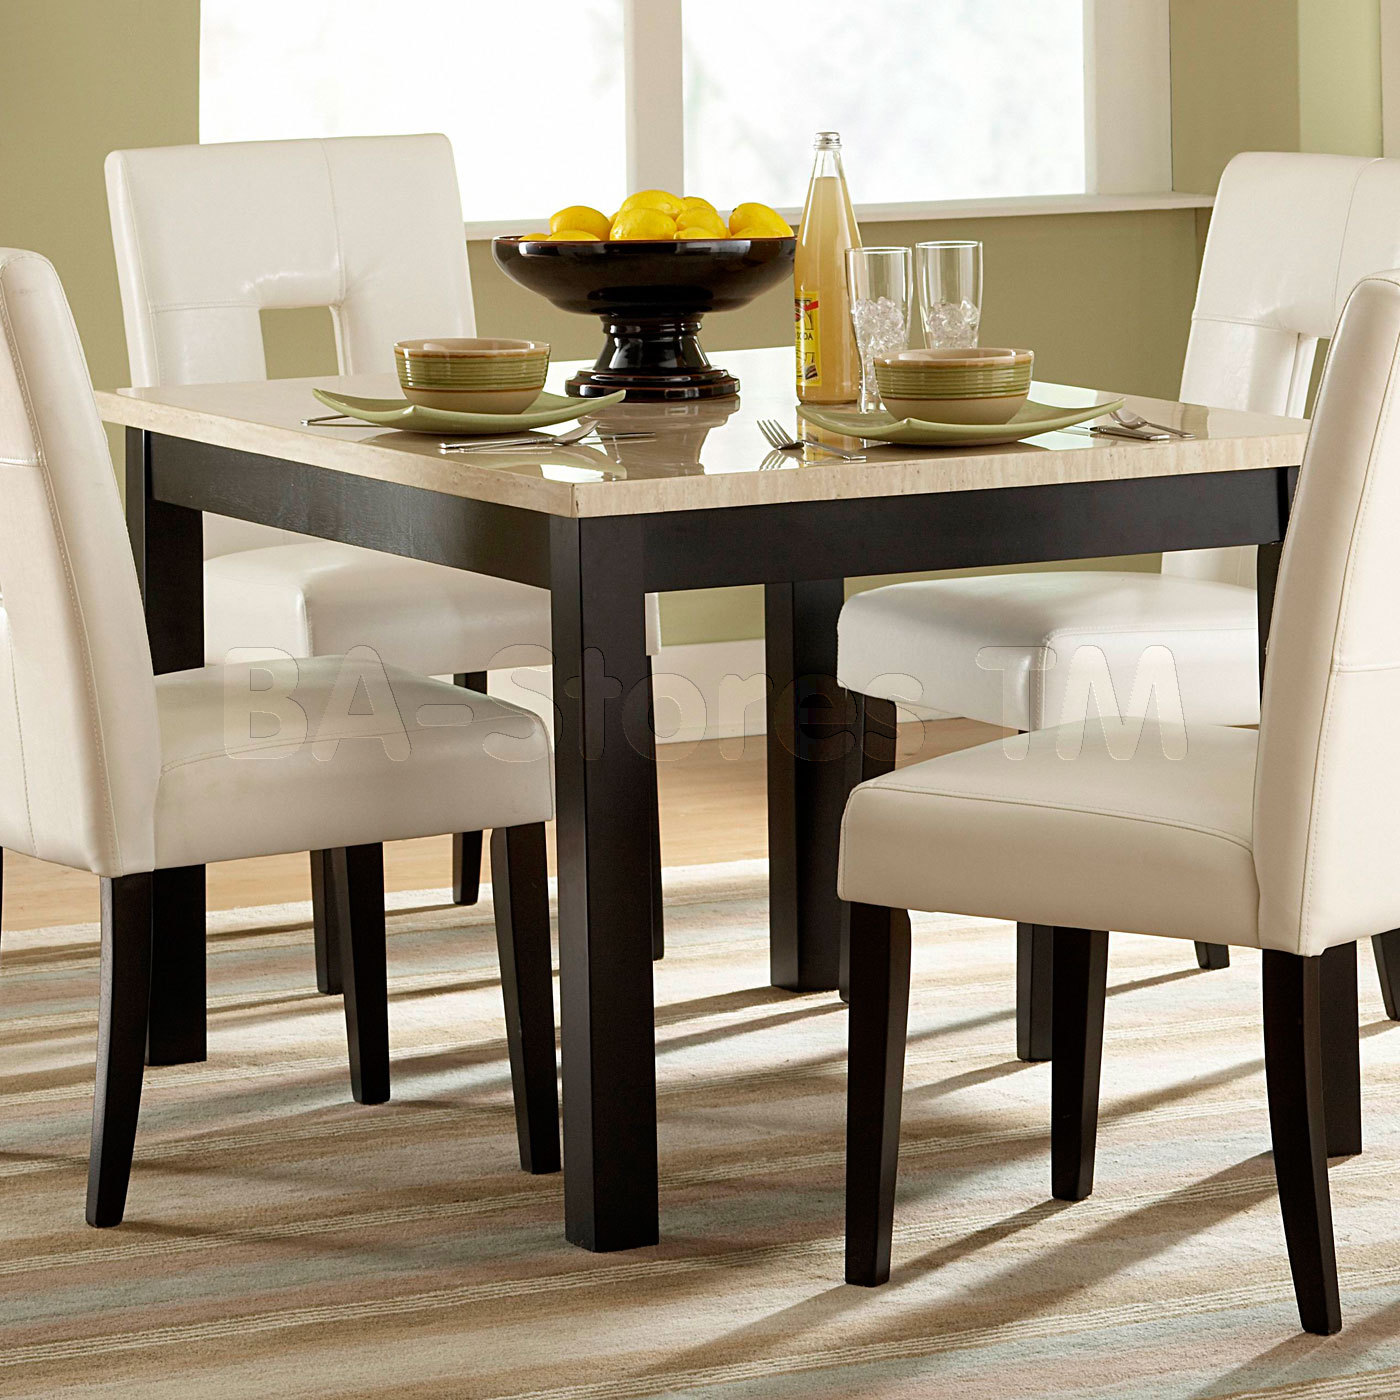 Square dining table for 4 homesfeed for Square dining room table